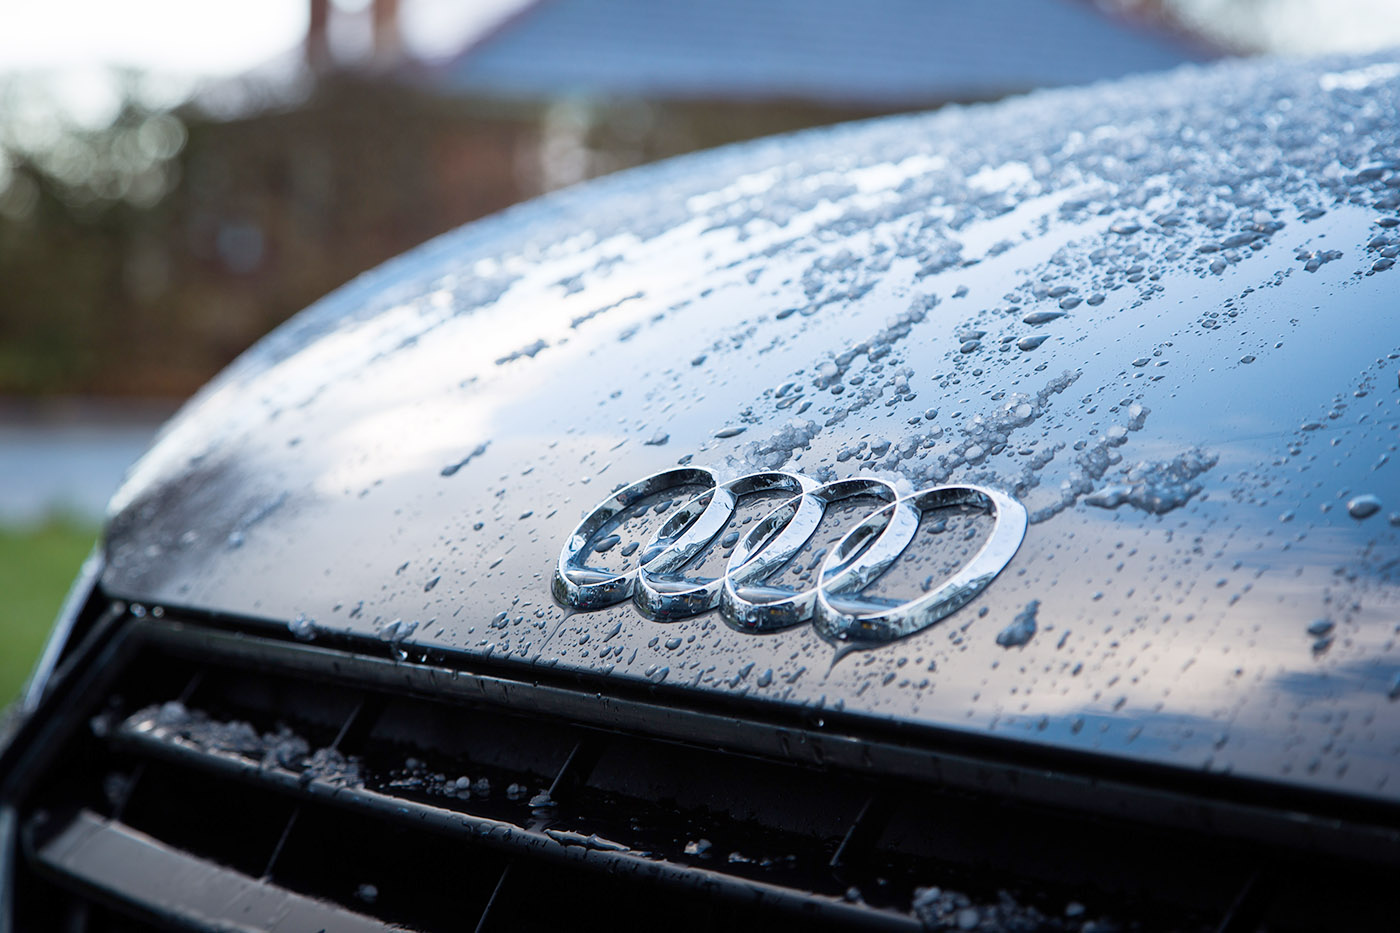 Audi badge on a silver car